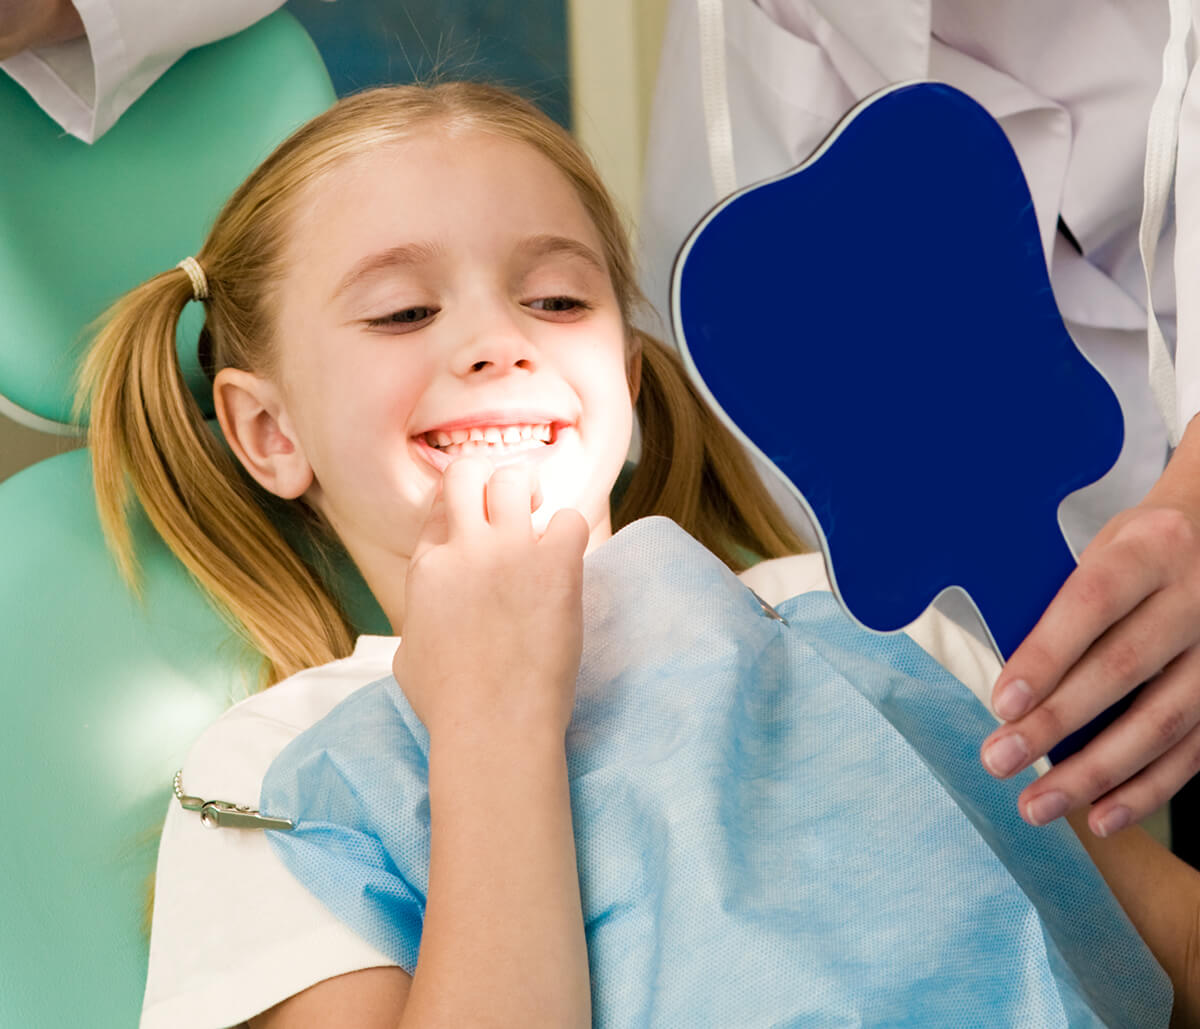 Dentist in Little Elm, TX Area, Welcomes Pediatric Patients with Medicaid Insurance!